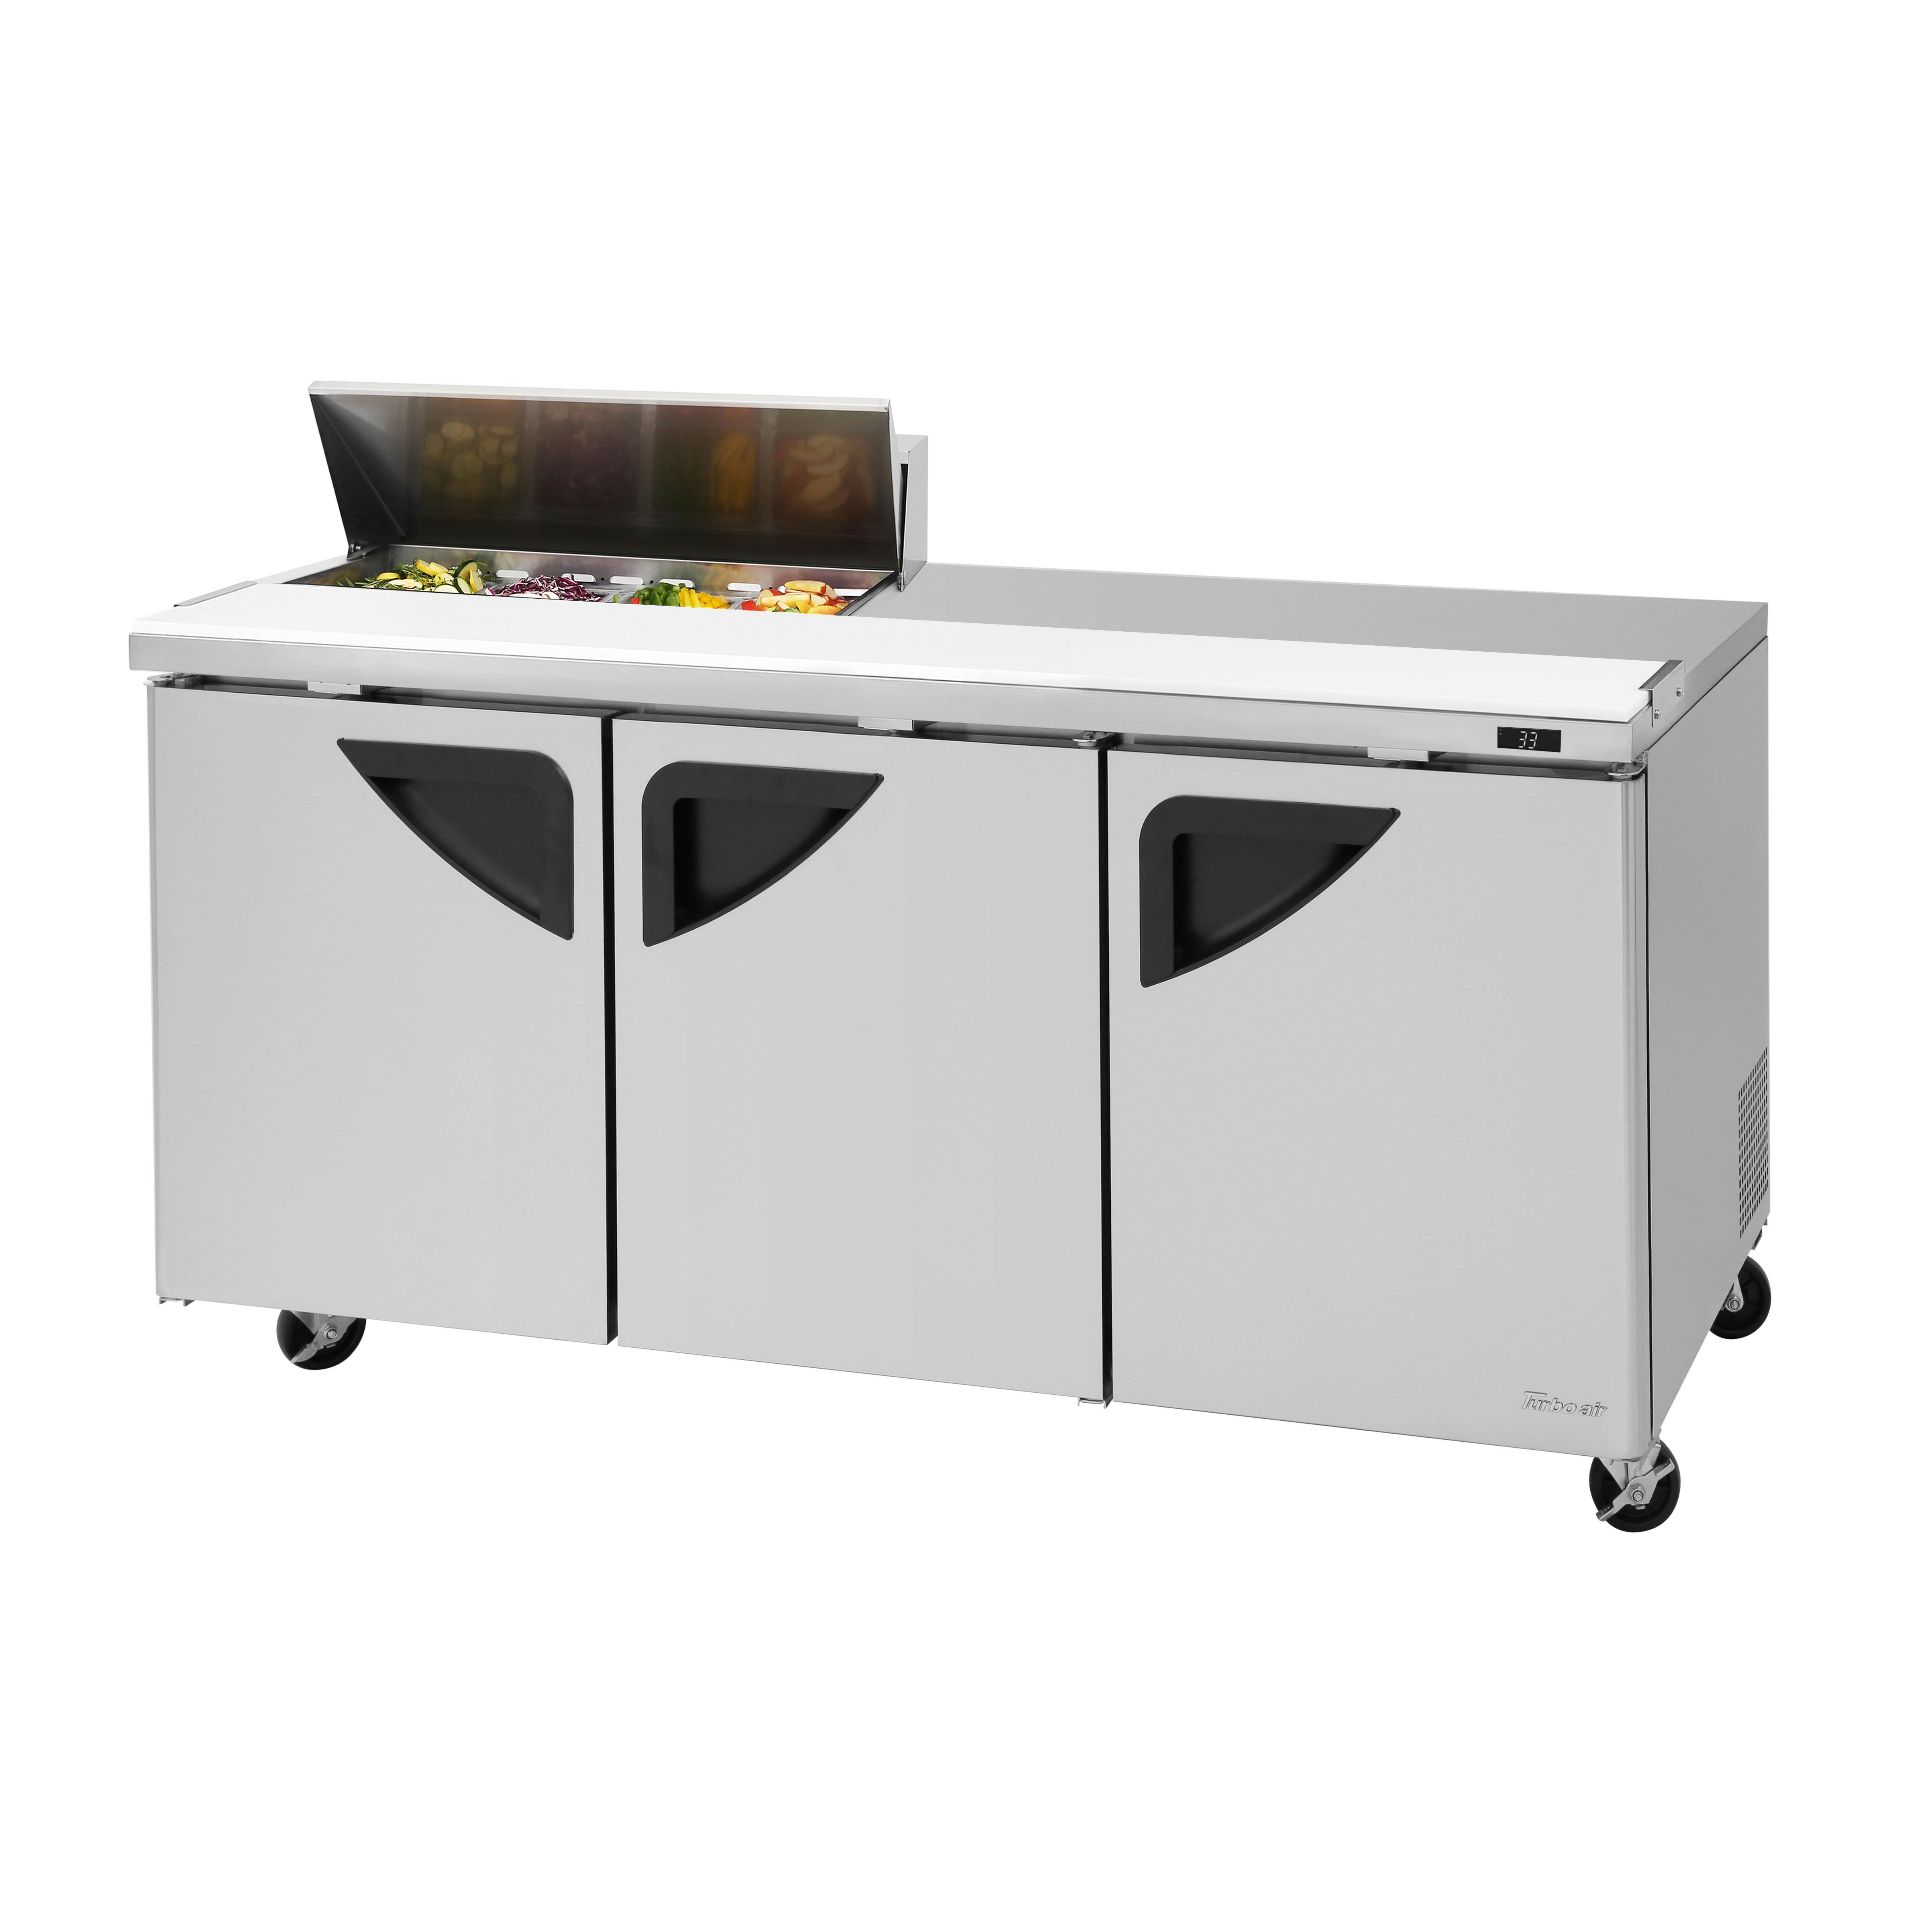 Turbo Air TST-72SD-08S-N refrigerated counter, sandwich / salad unit